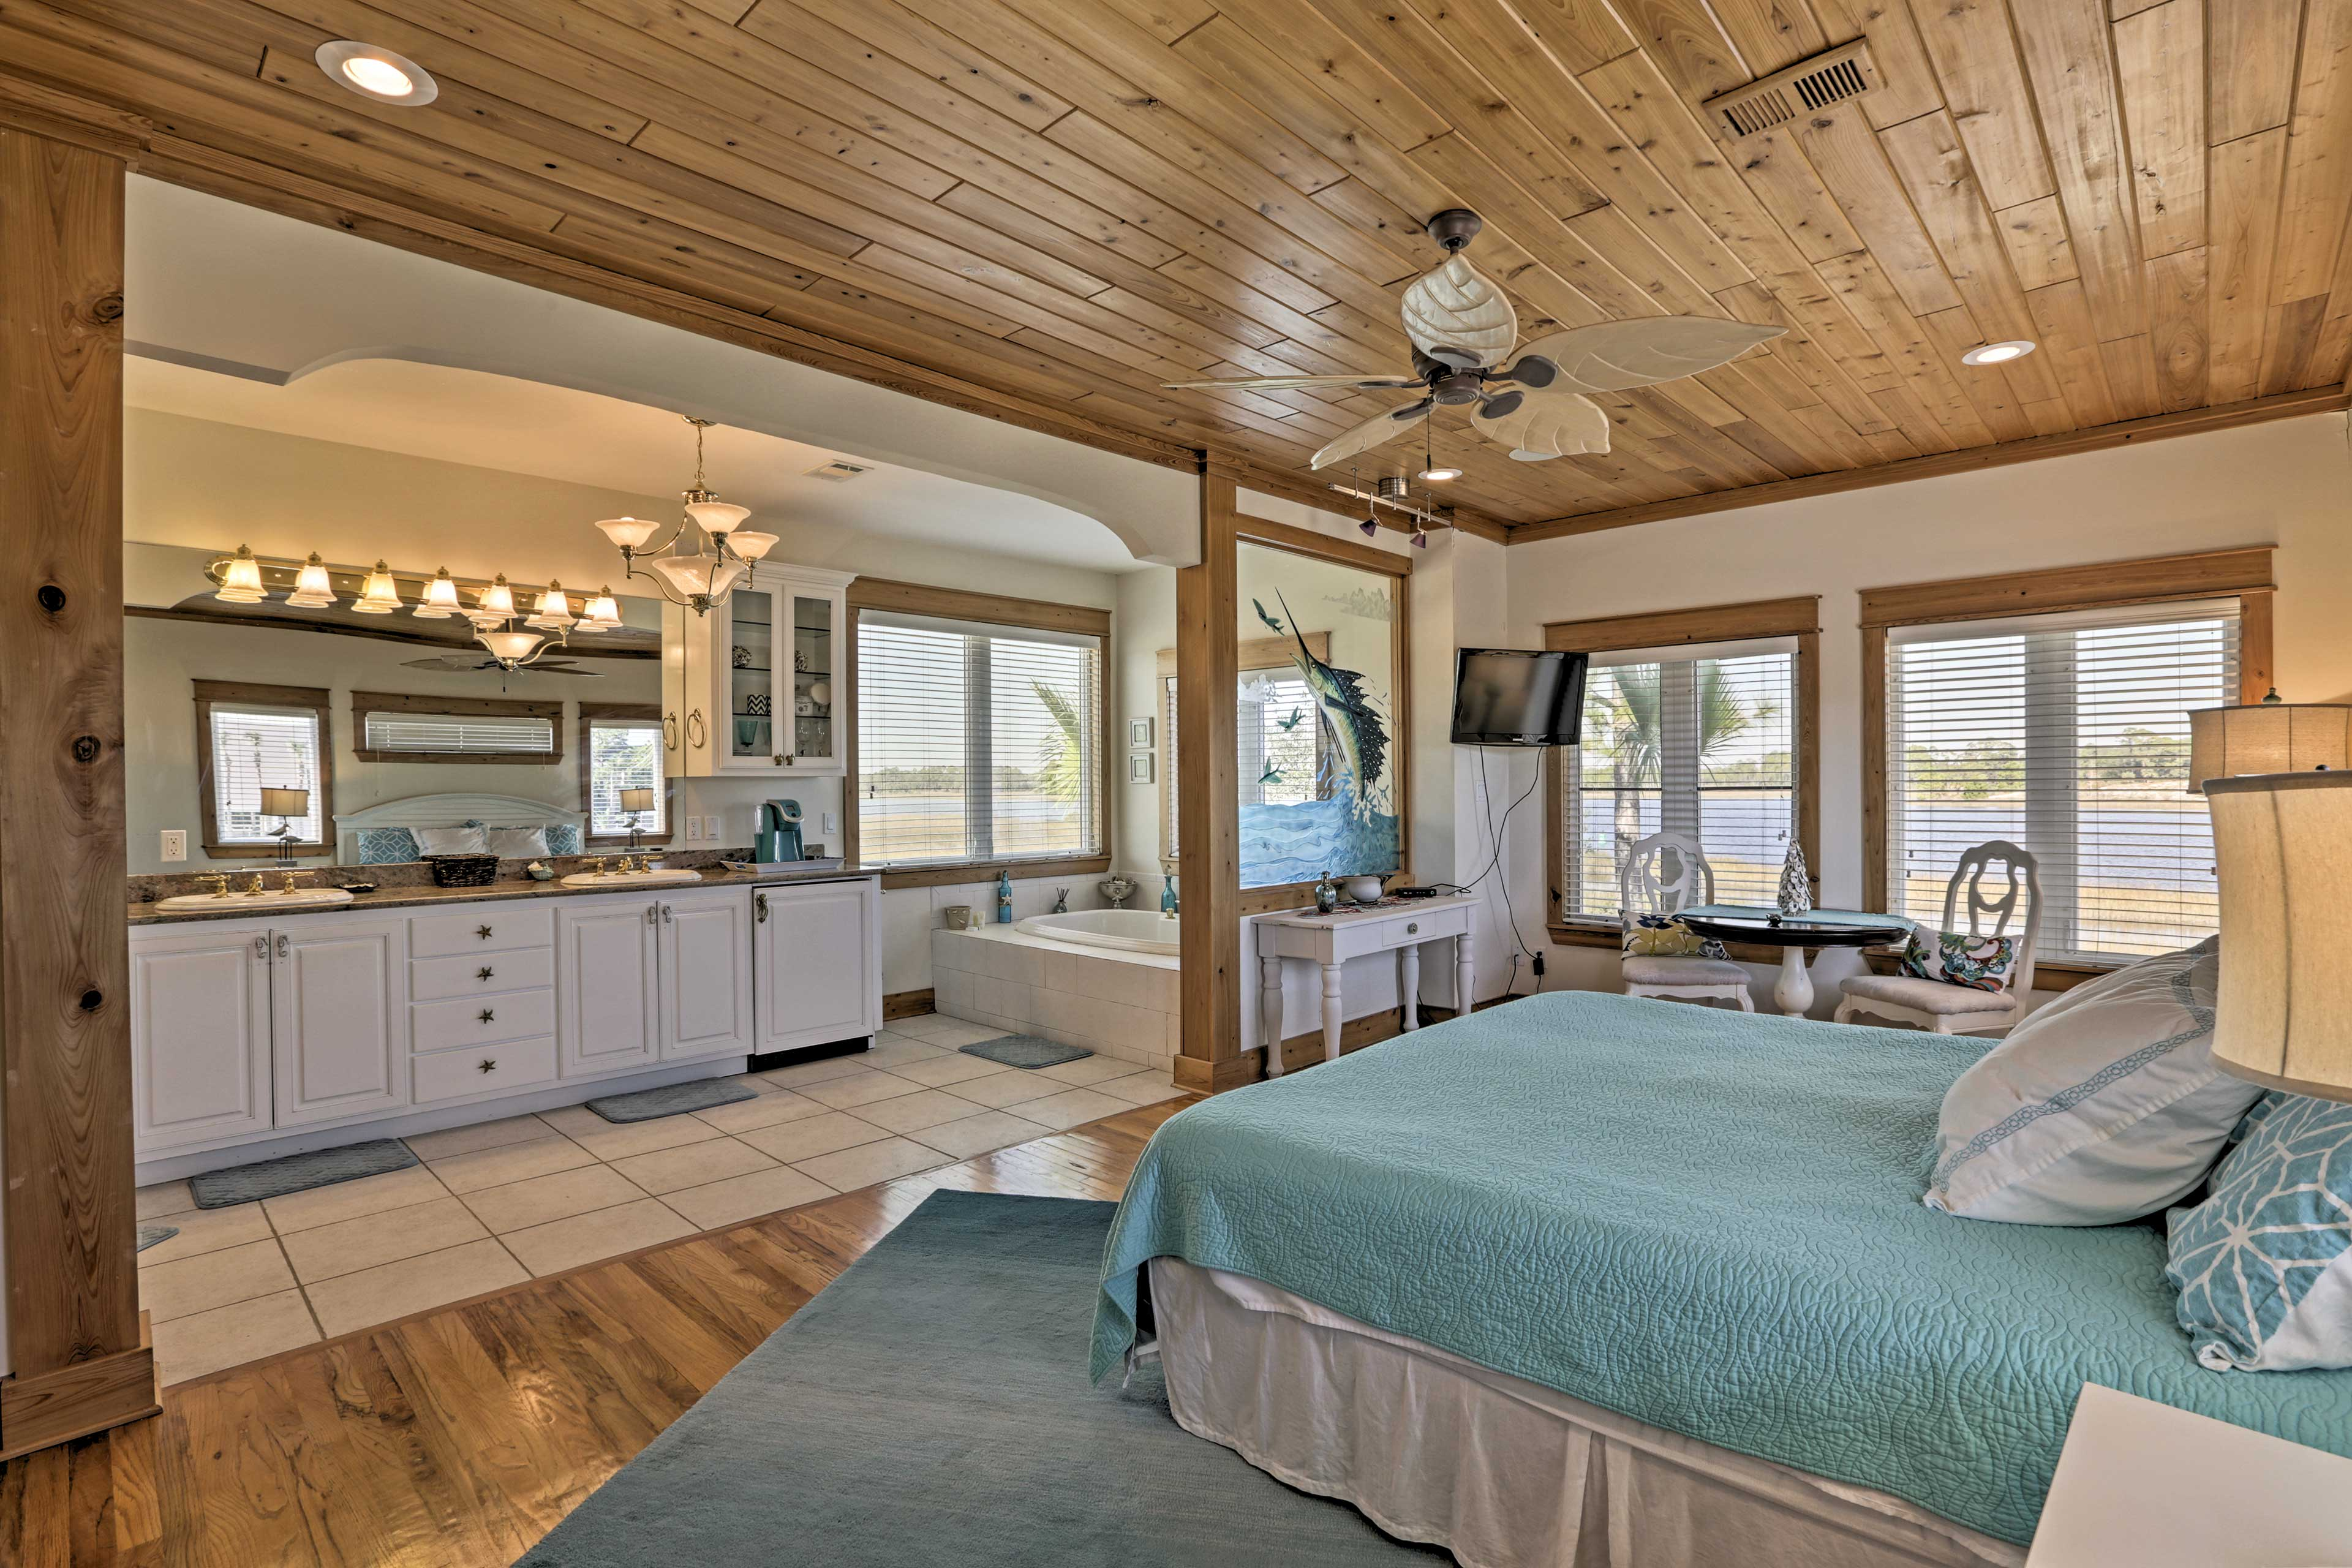 You'll love spending downtime in this lavish master bedroom!